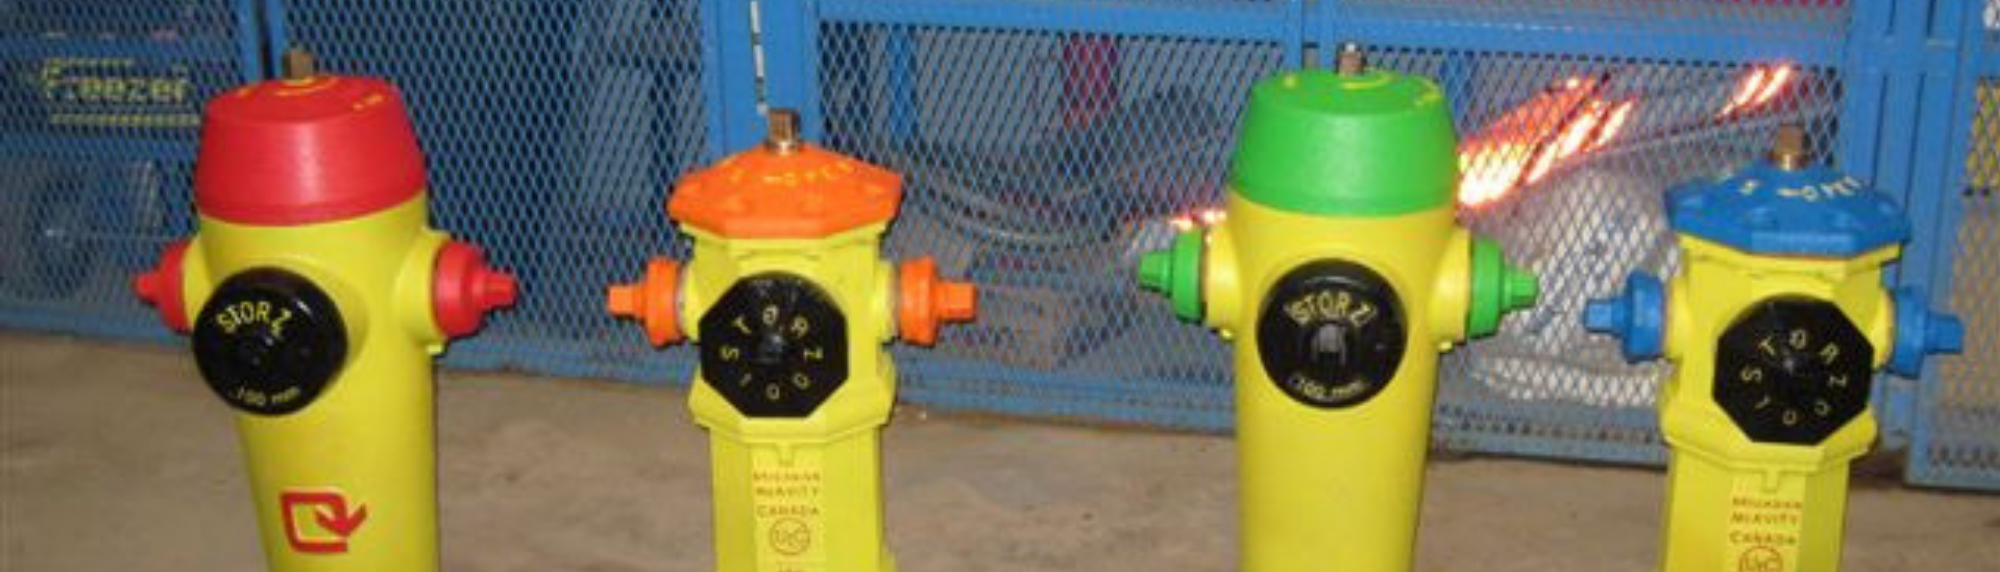 Fire hydrant inspection and flow rating